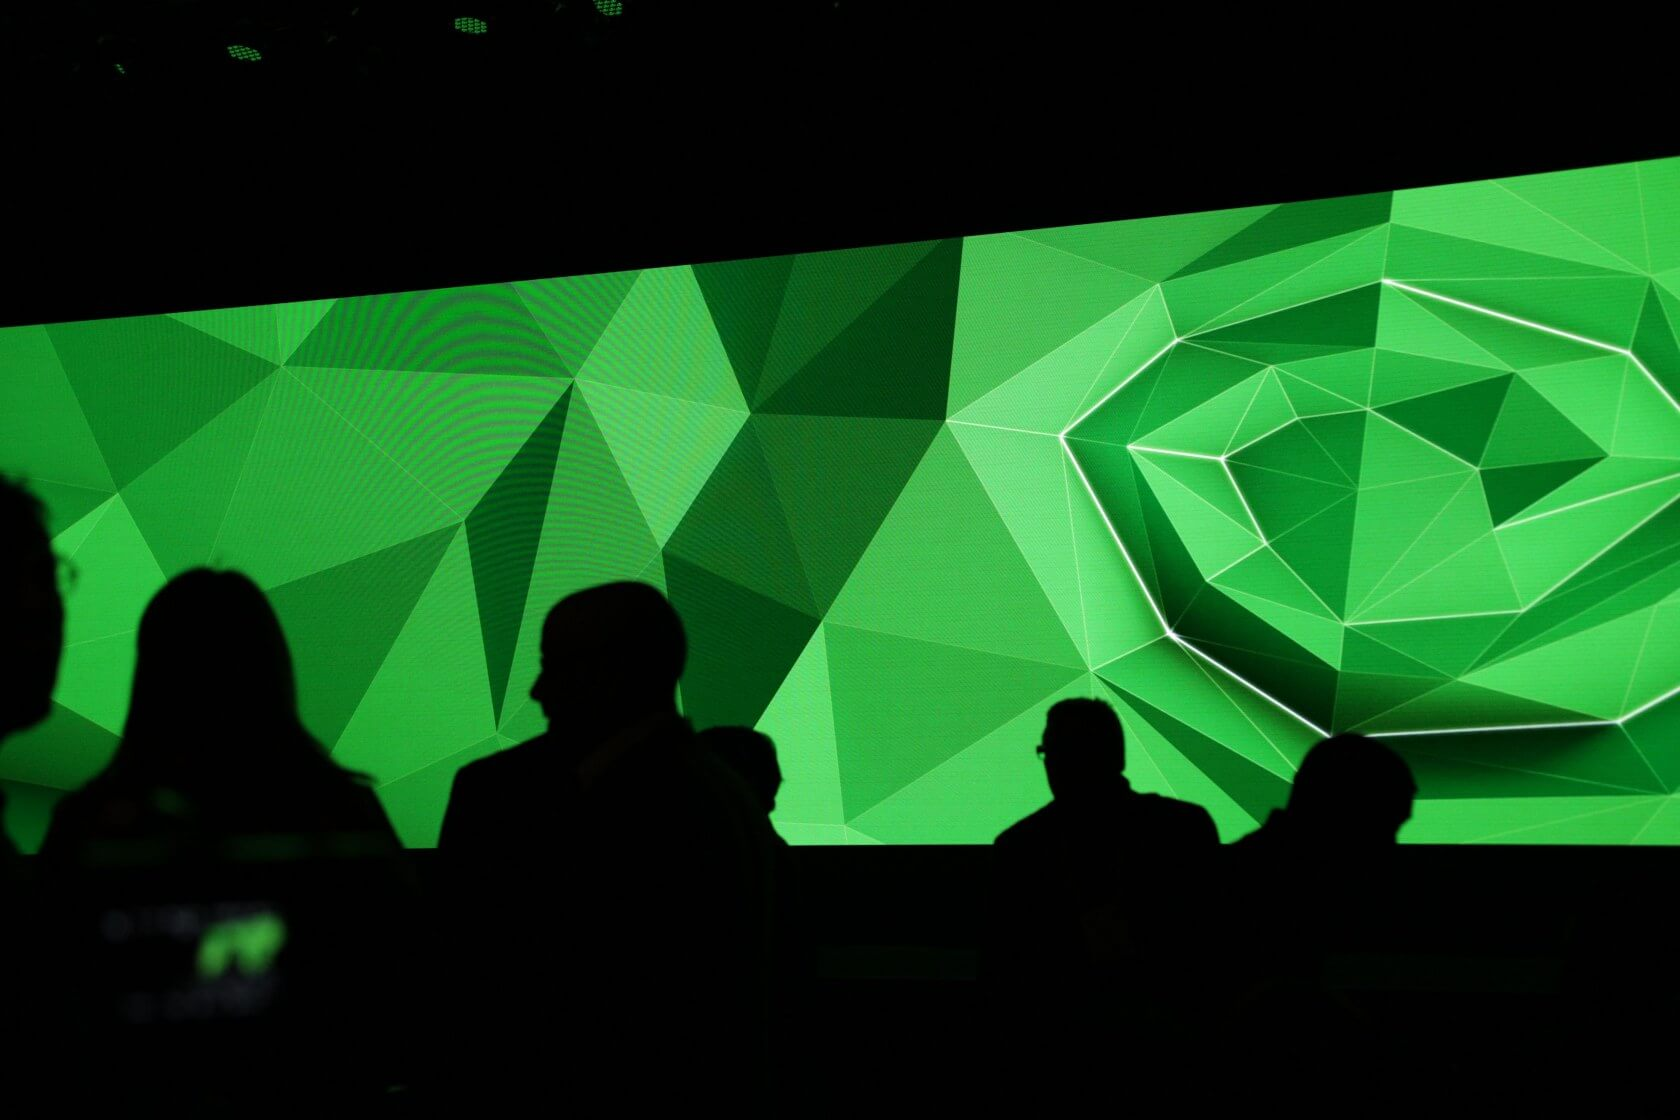 Nvidia tweets, then deletes a mysterious teaser showing an animated blinking eye